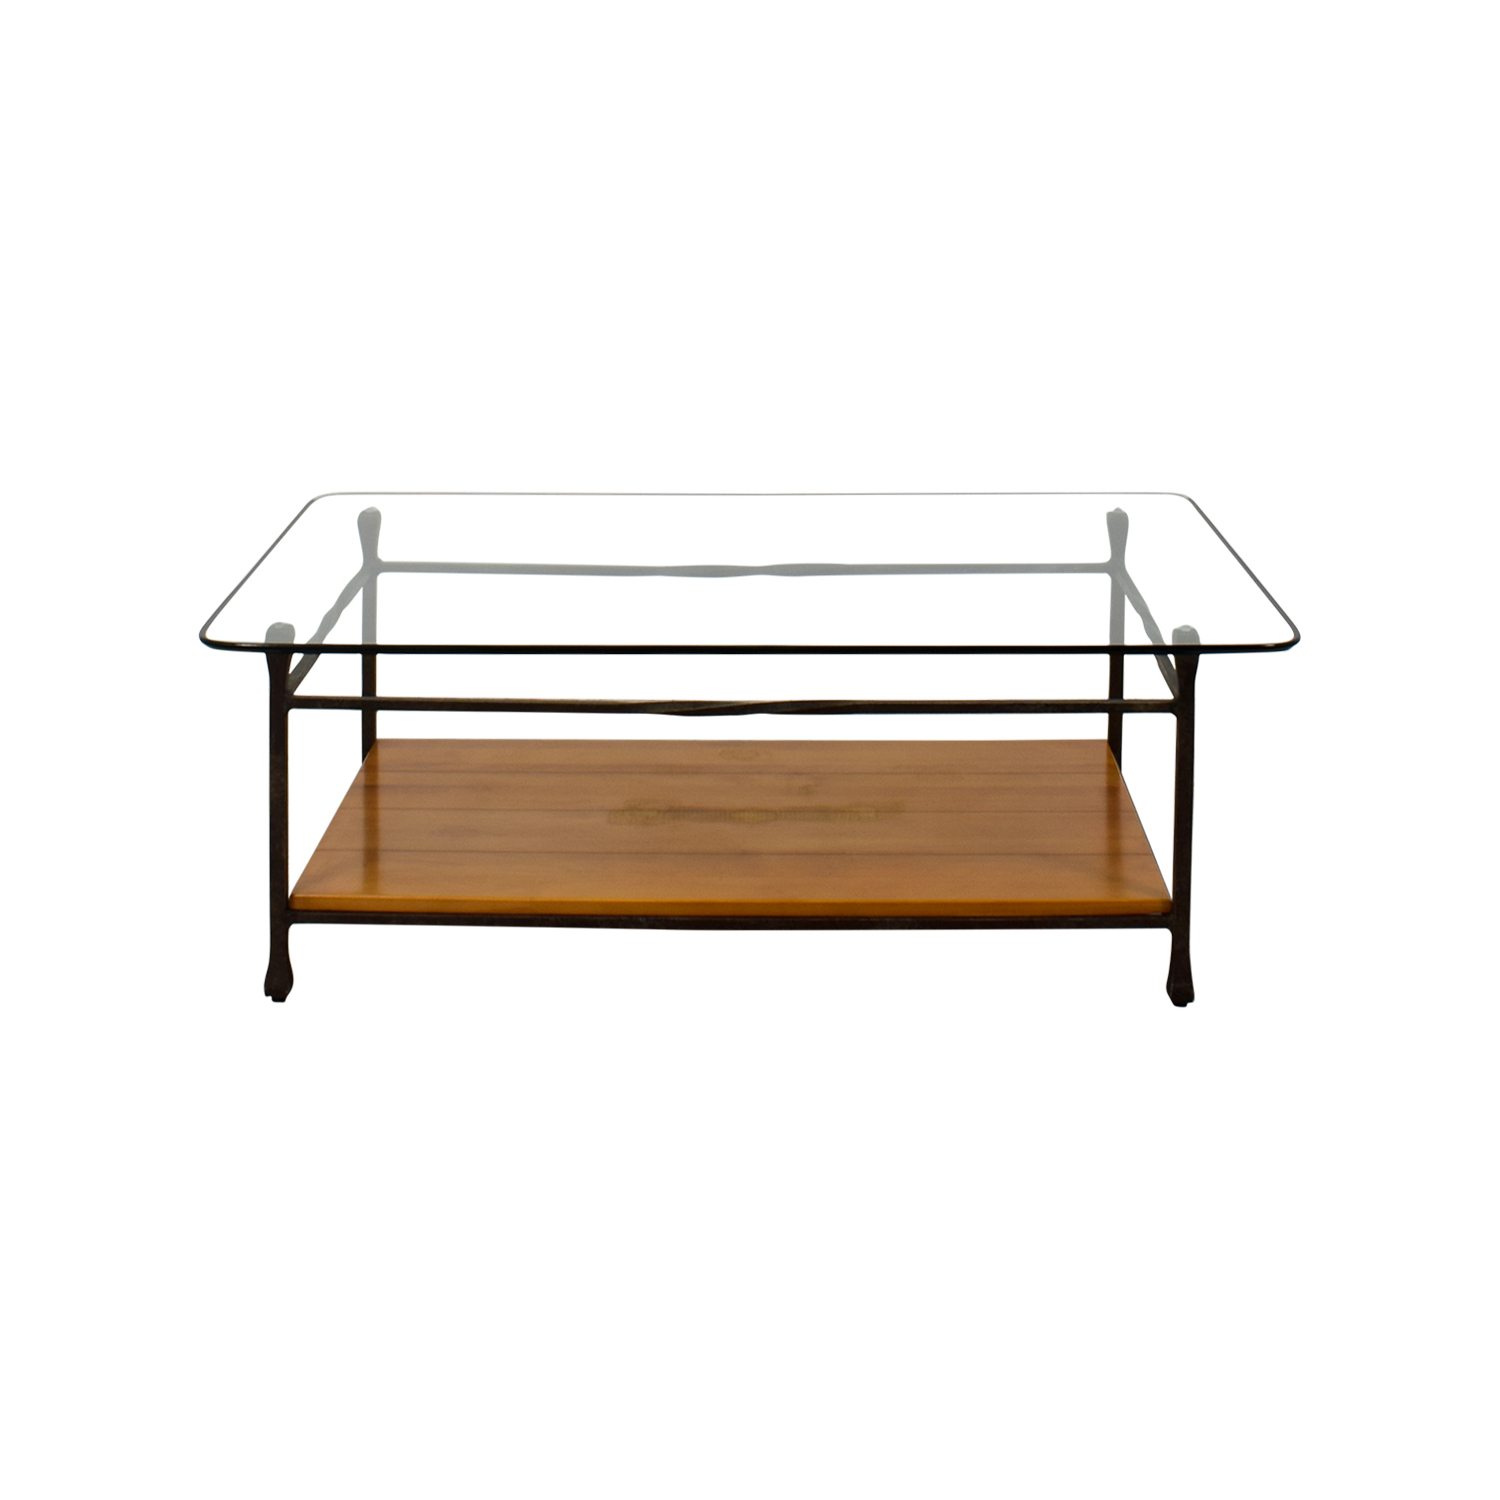 [%79% Off – Macy's Macy's White Two Drawer Coffee Table / Tables For Trendy Allen Cocktail Tables|Allen Cocktail Tables For Trendy 79% Off – Macy's Macy's White Two Drawer Coffee Table / Tables|2018 Allen Cocktail Tables For 79% Off – Macy's Macy's White Two Drawer Coffee Table / Tables|Trendy 79% Off – Macy's Macy's White Two Drawer Coffee Table / Tables With Regard To Allen Cocktail Tables%] (View 1 of 20)